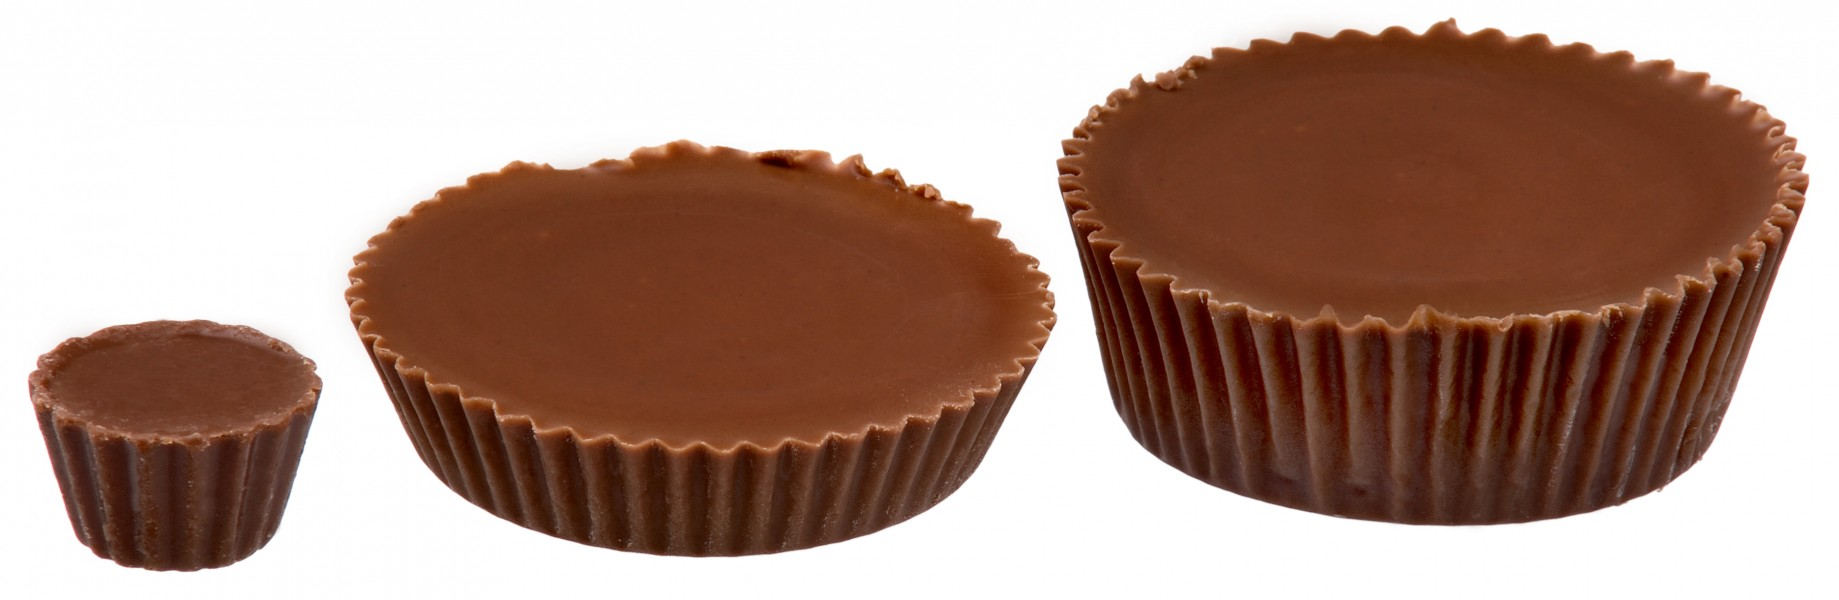 Reeses-PB-Cups-Size-Trio